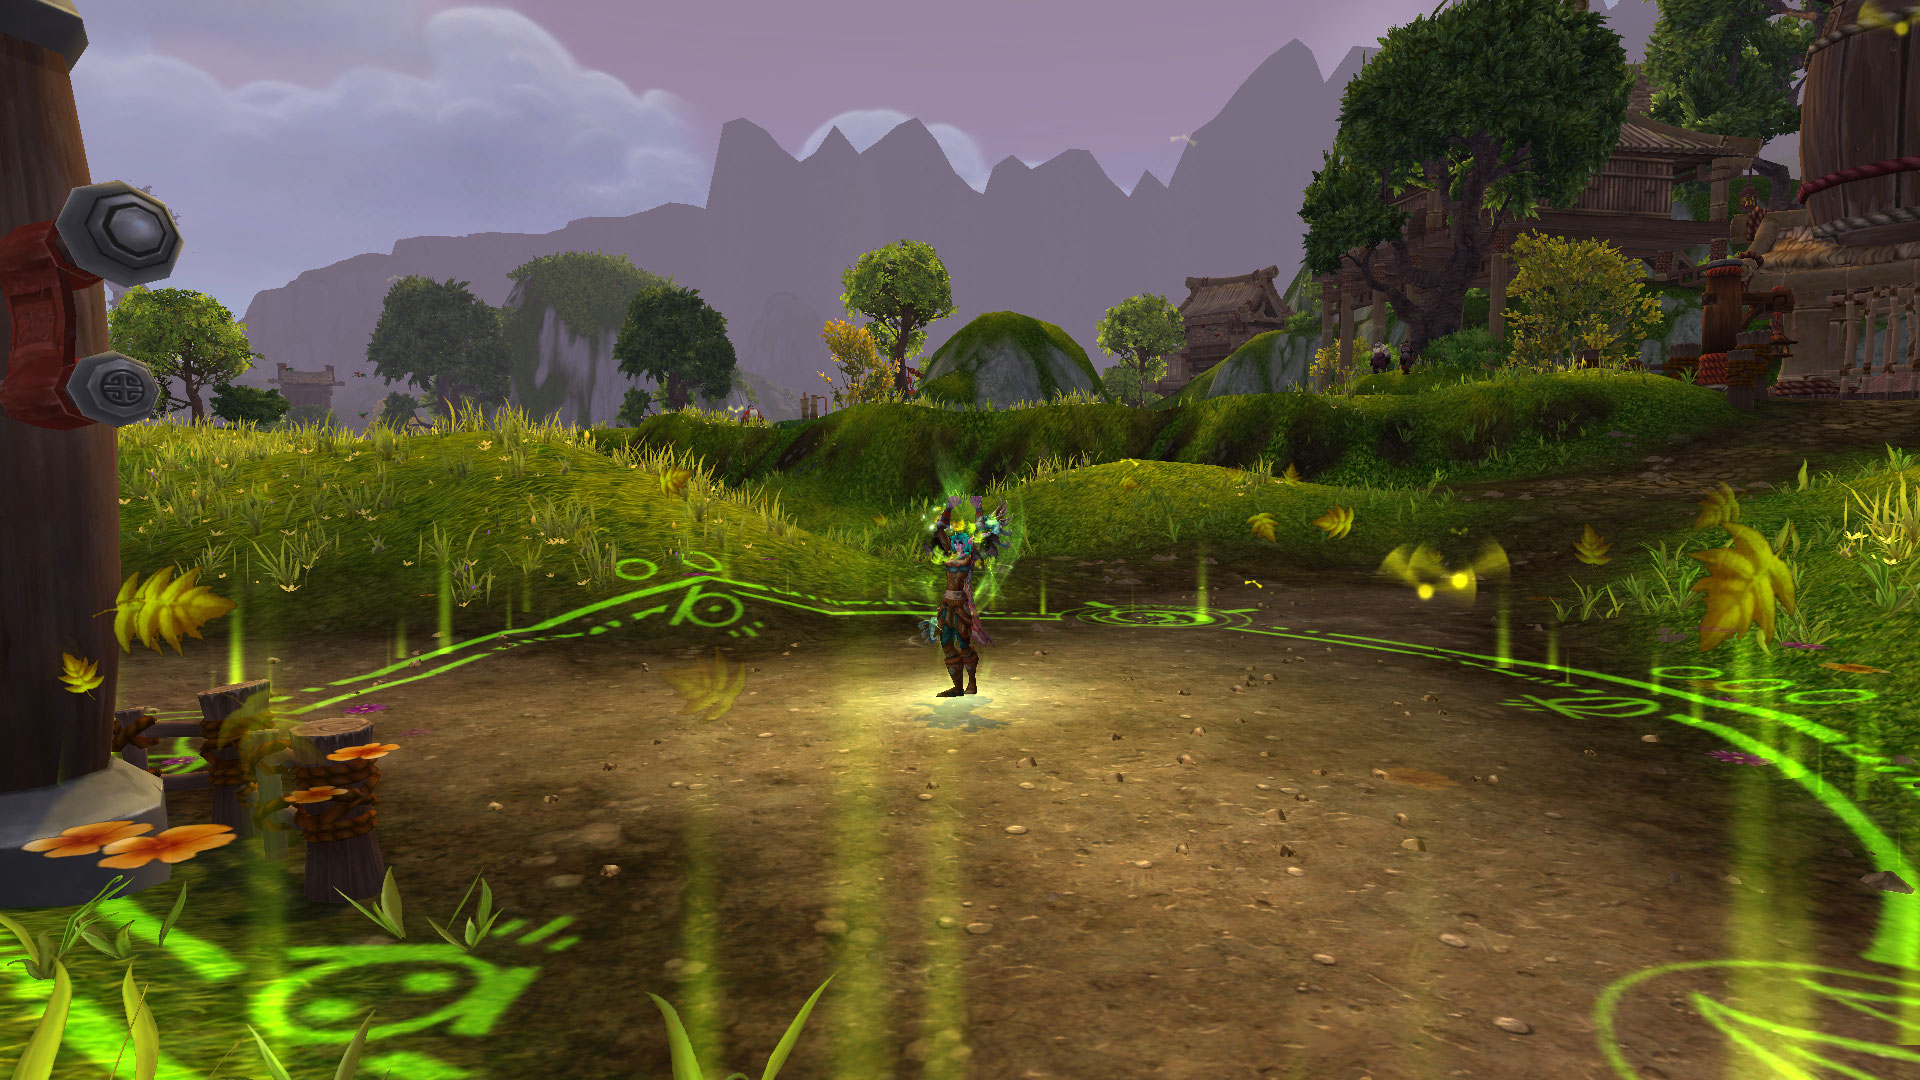 Arresting Druid Healing Priest Growing Up Azeroth Continued Exposure Wow Bugged How To Do Continued Exposure Wow dpreview Continued Exposure Wow